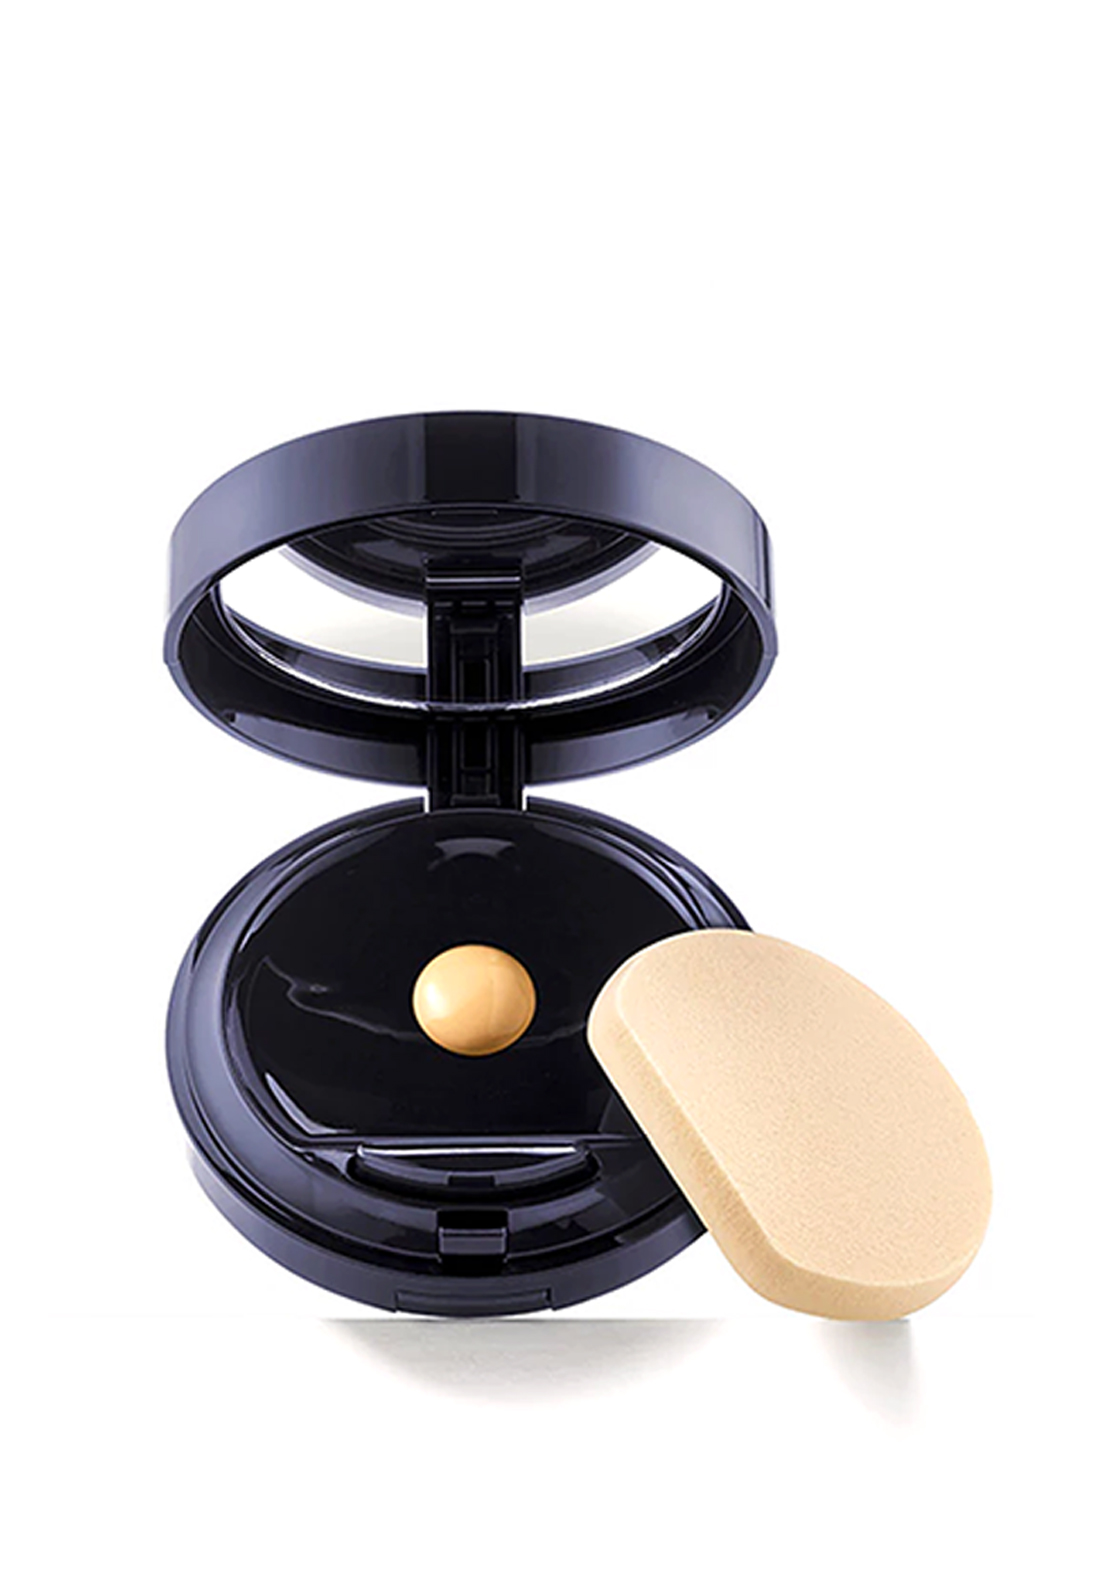 Estee Lauder Double Wear Make Up to Go Liquid Compact, Cool Bone